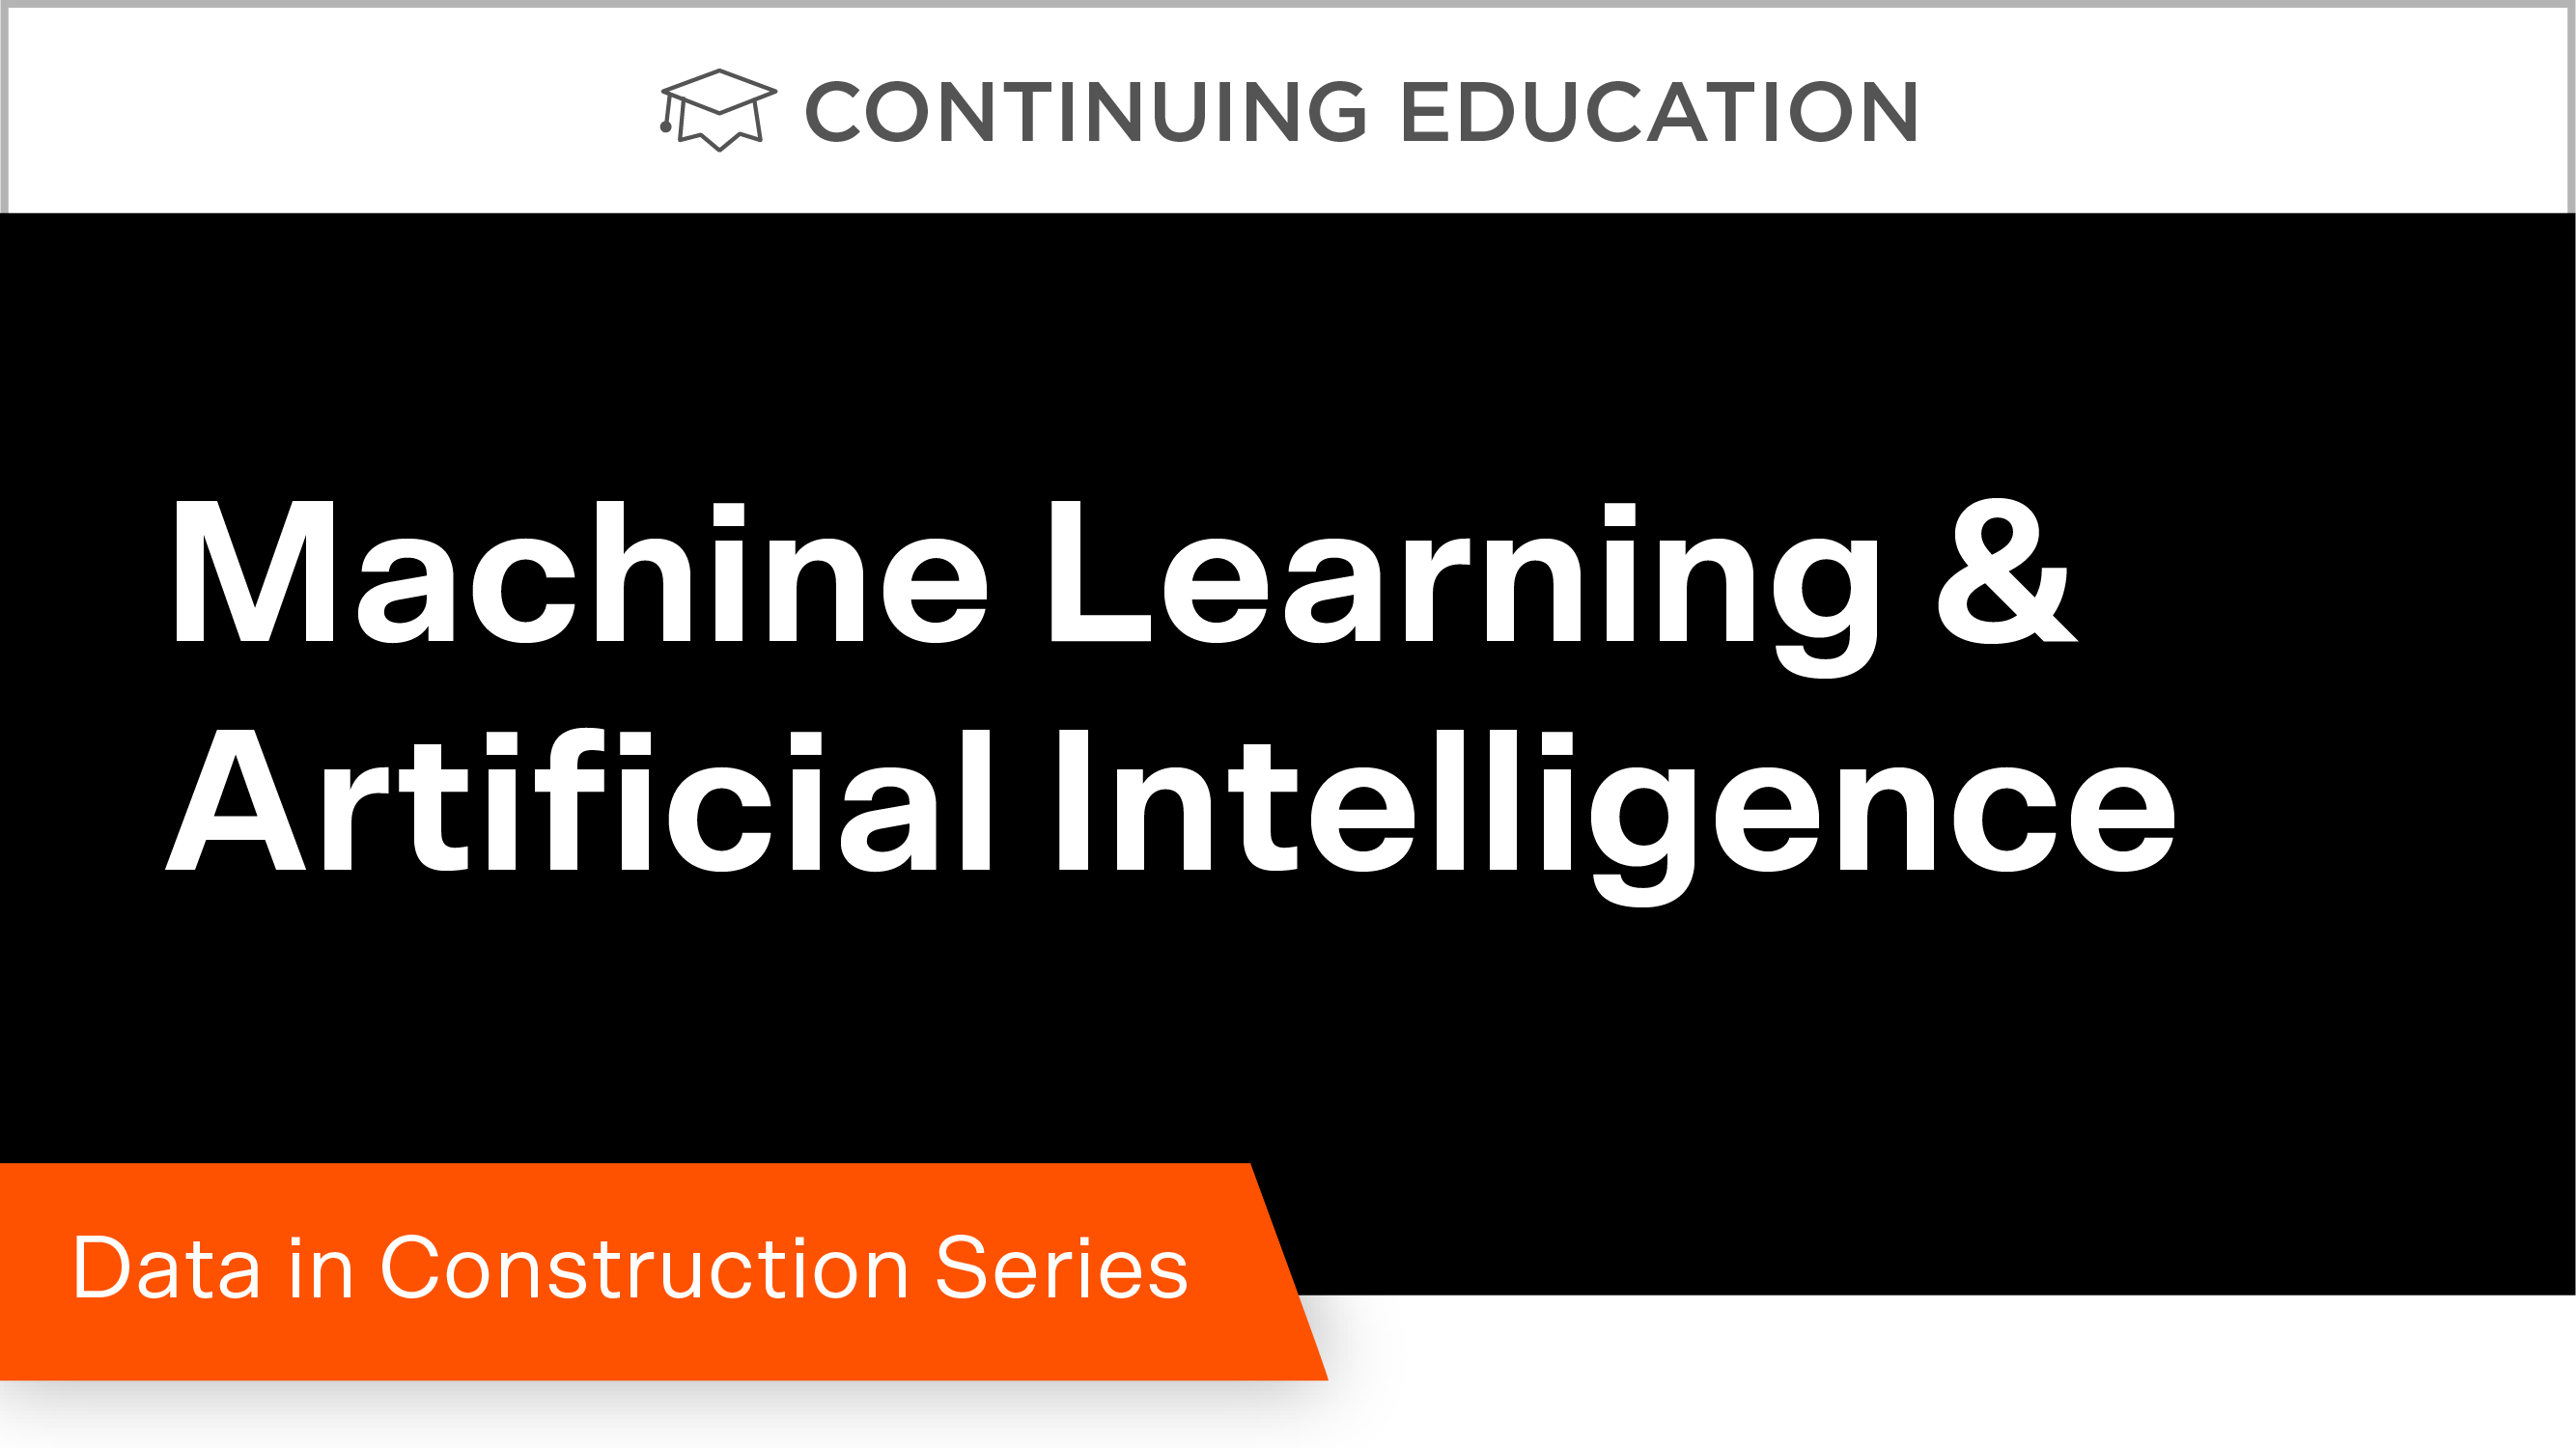 Data in Construction Part 3: Machine Learning & Artificial Intelligence